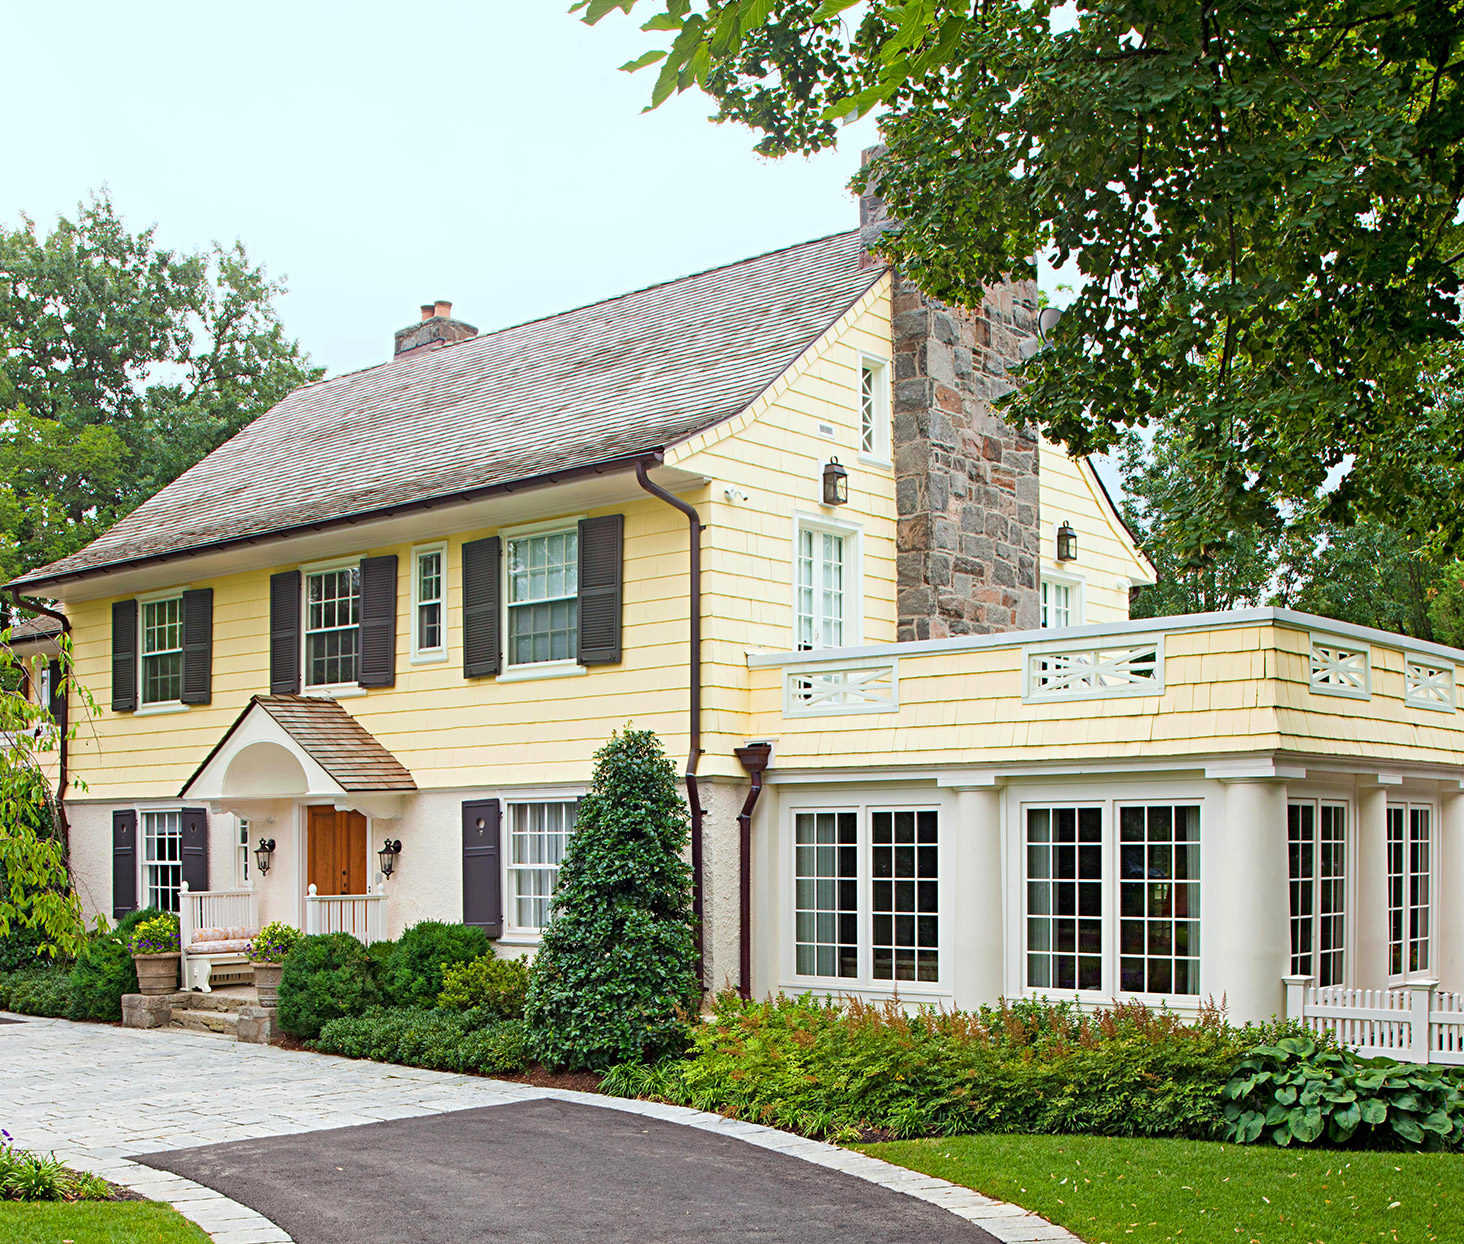 yellow and white colonial style home